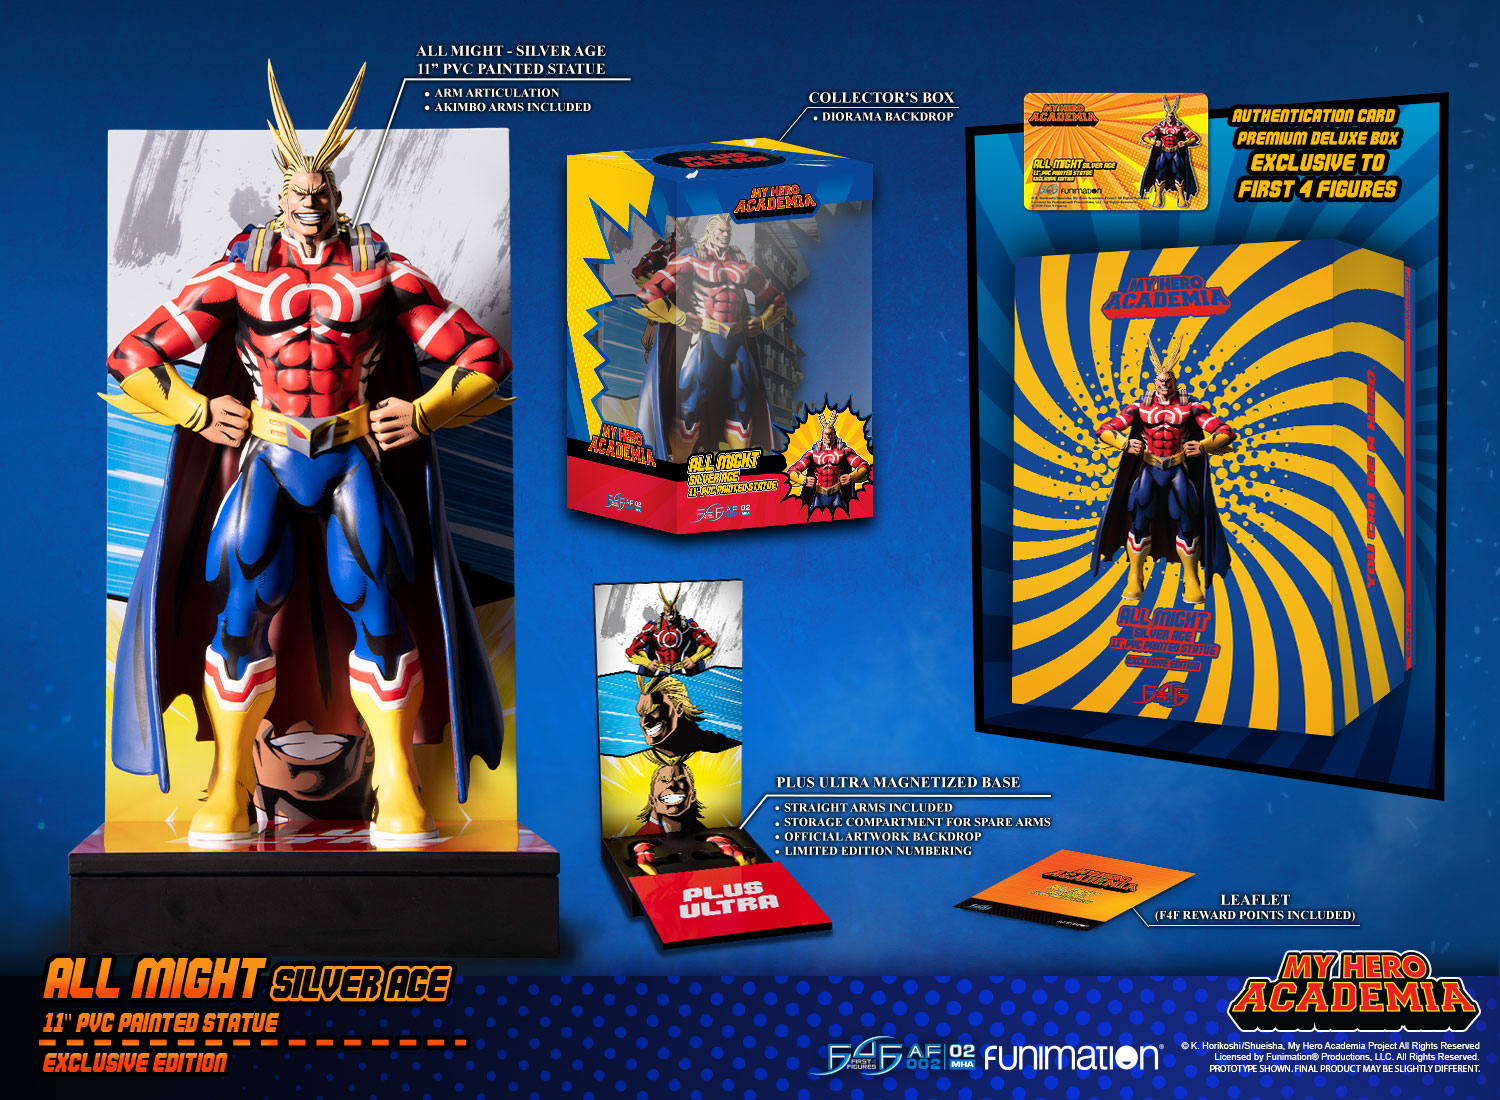 All Might: Silver Age (Exclusive Edition)